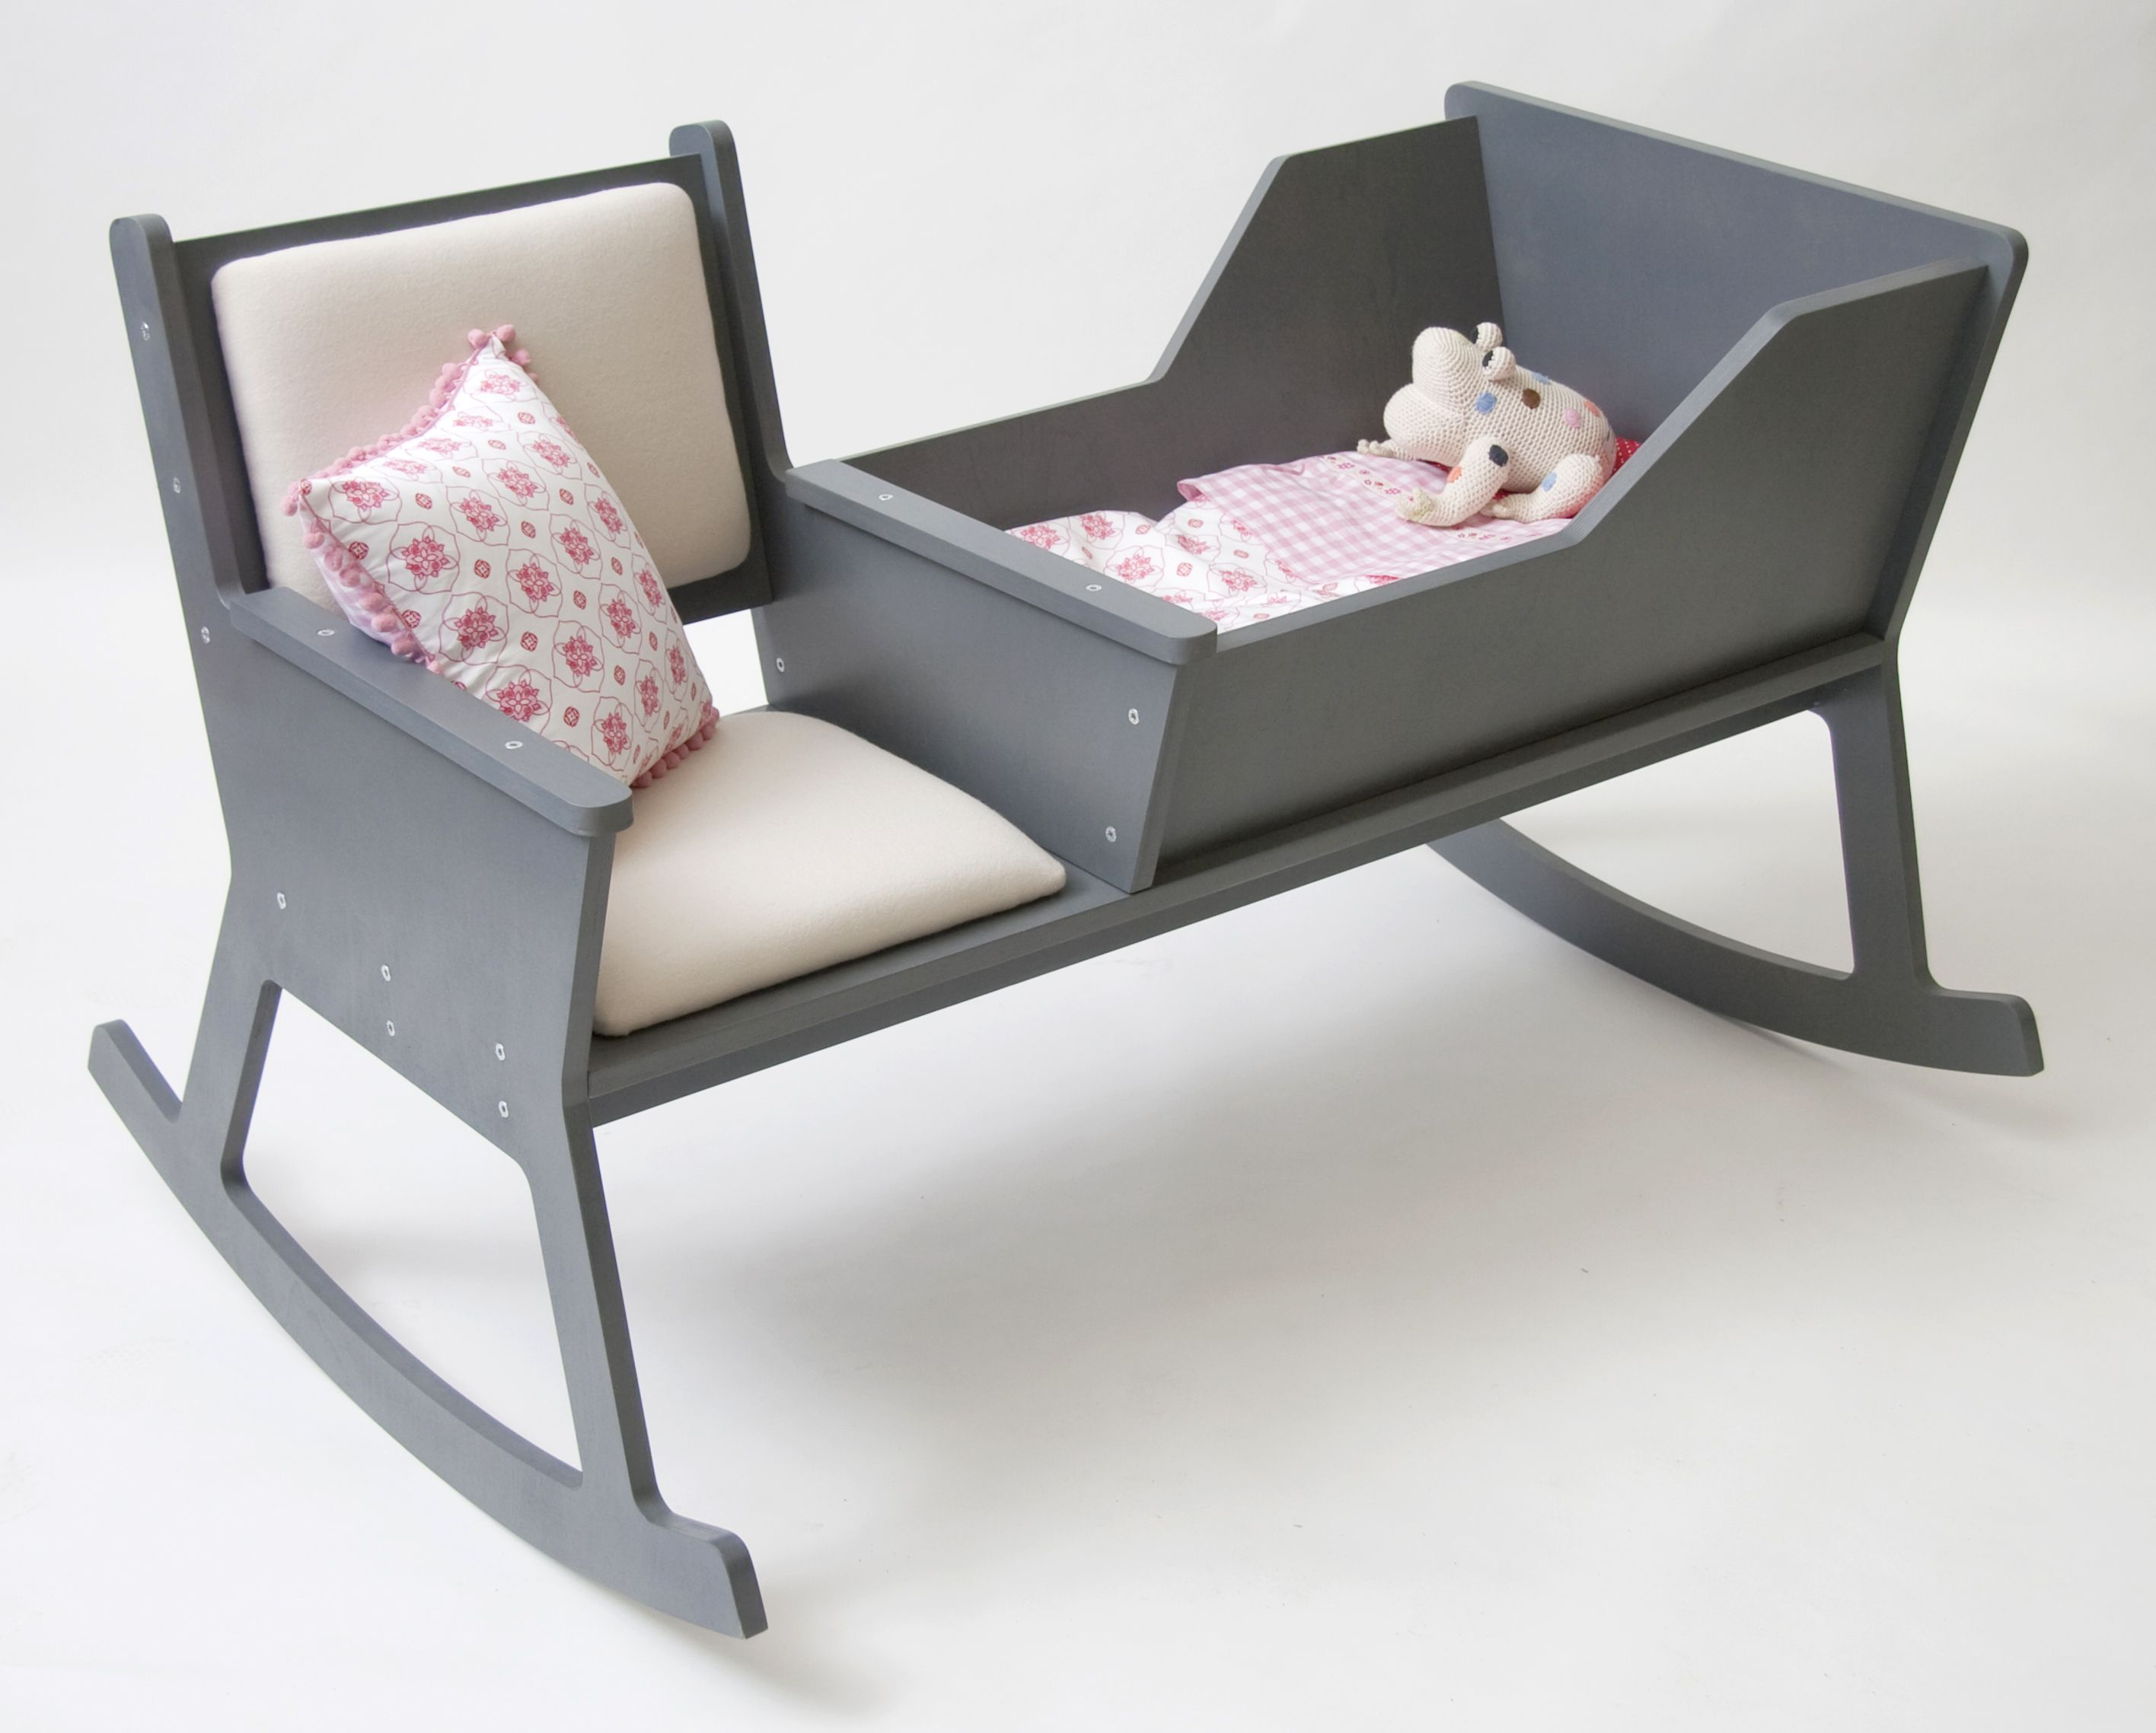 Sedie A Dondolo Bambini : Rockid by ontwerpduo product rocking chair . sedie a dondolo